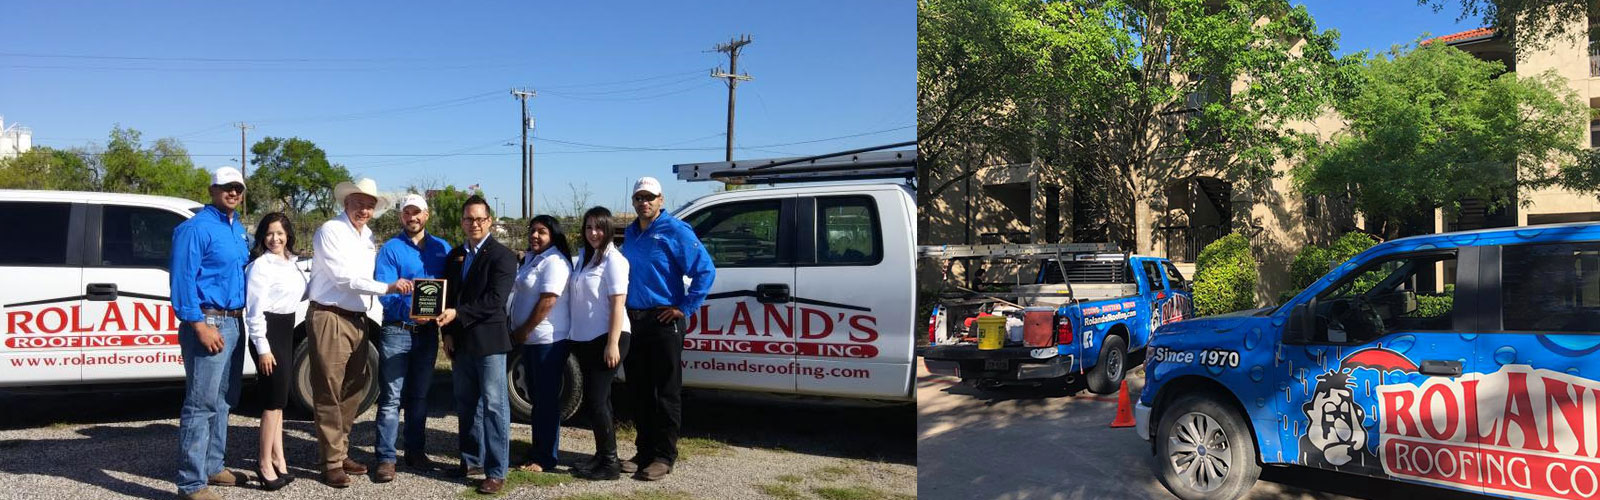 Roland's Roofing Images